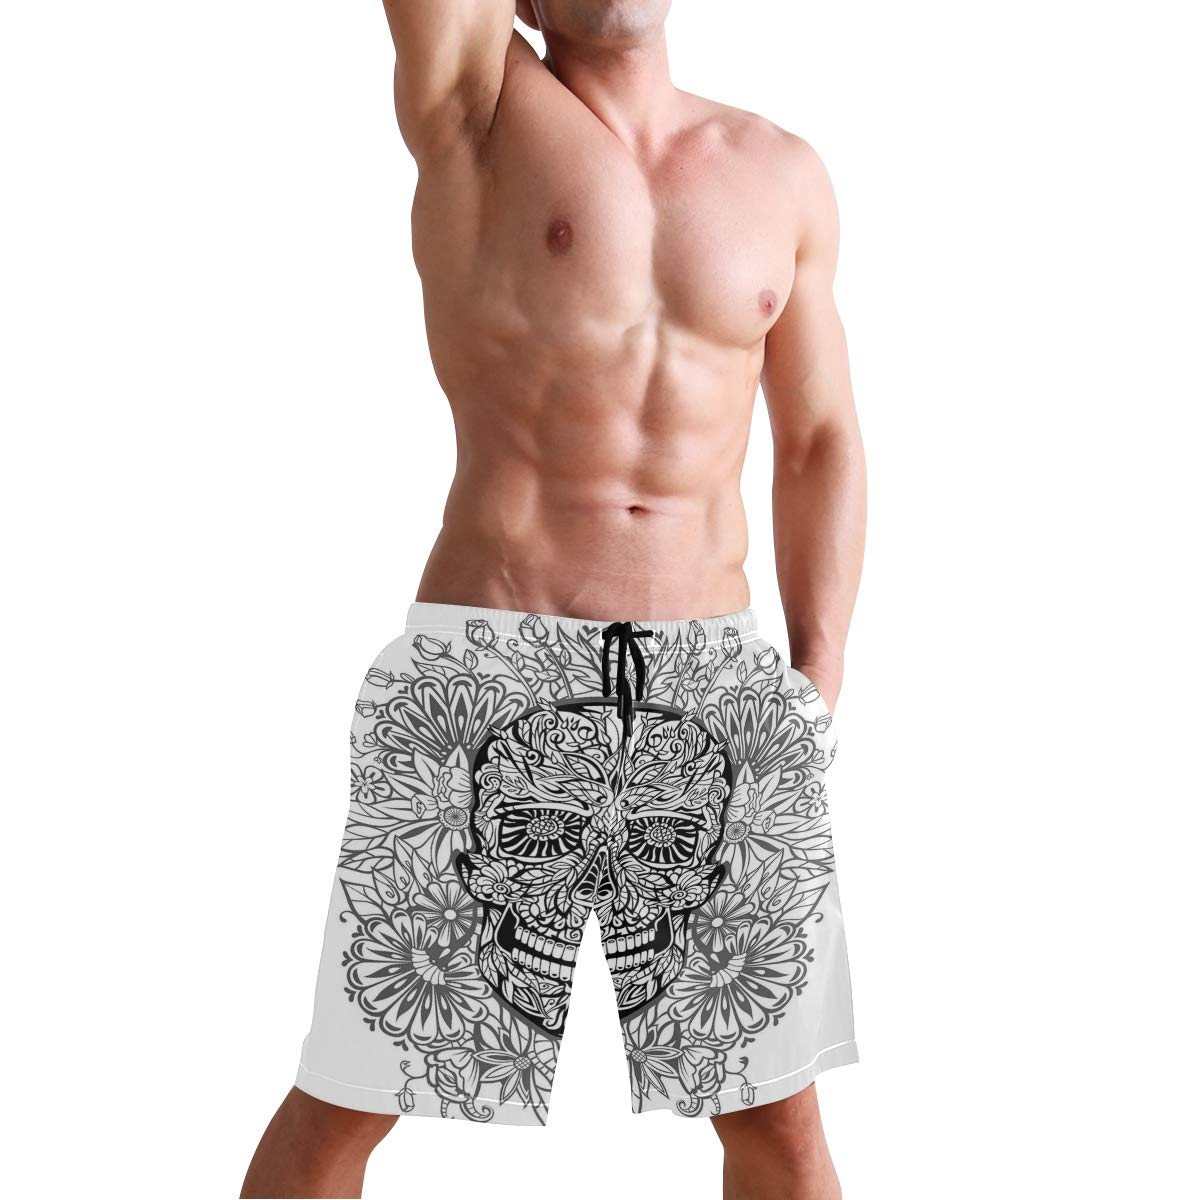 COVASA Mens Summer ShortsGothic Pattern with White Lily and Skulls